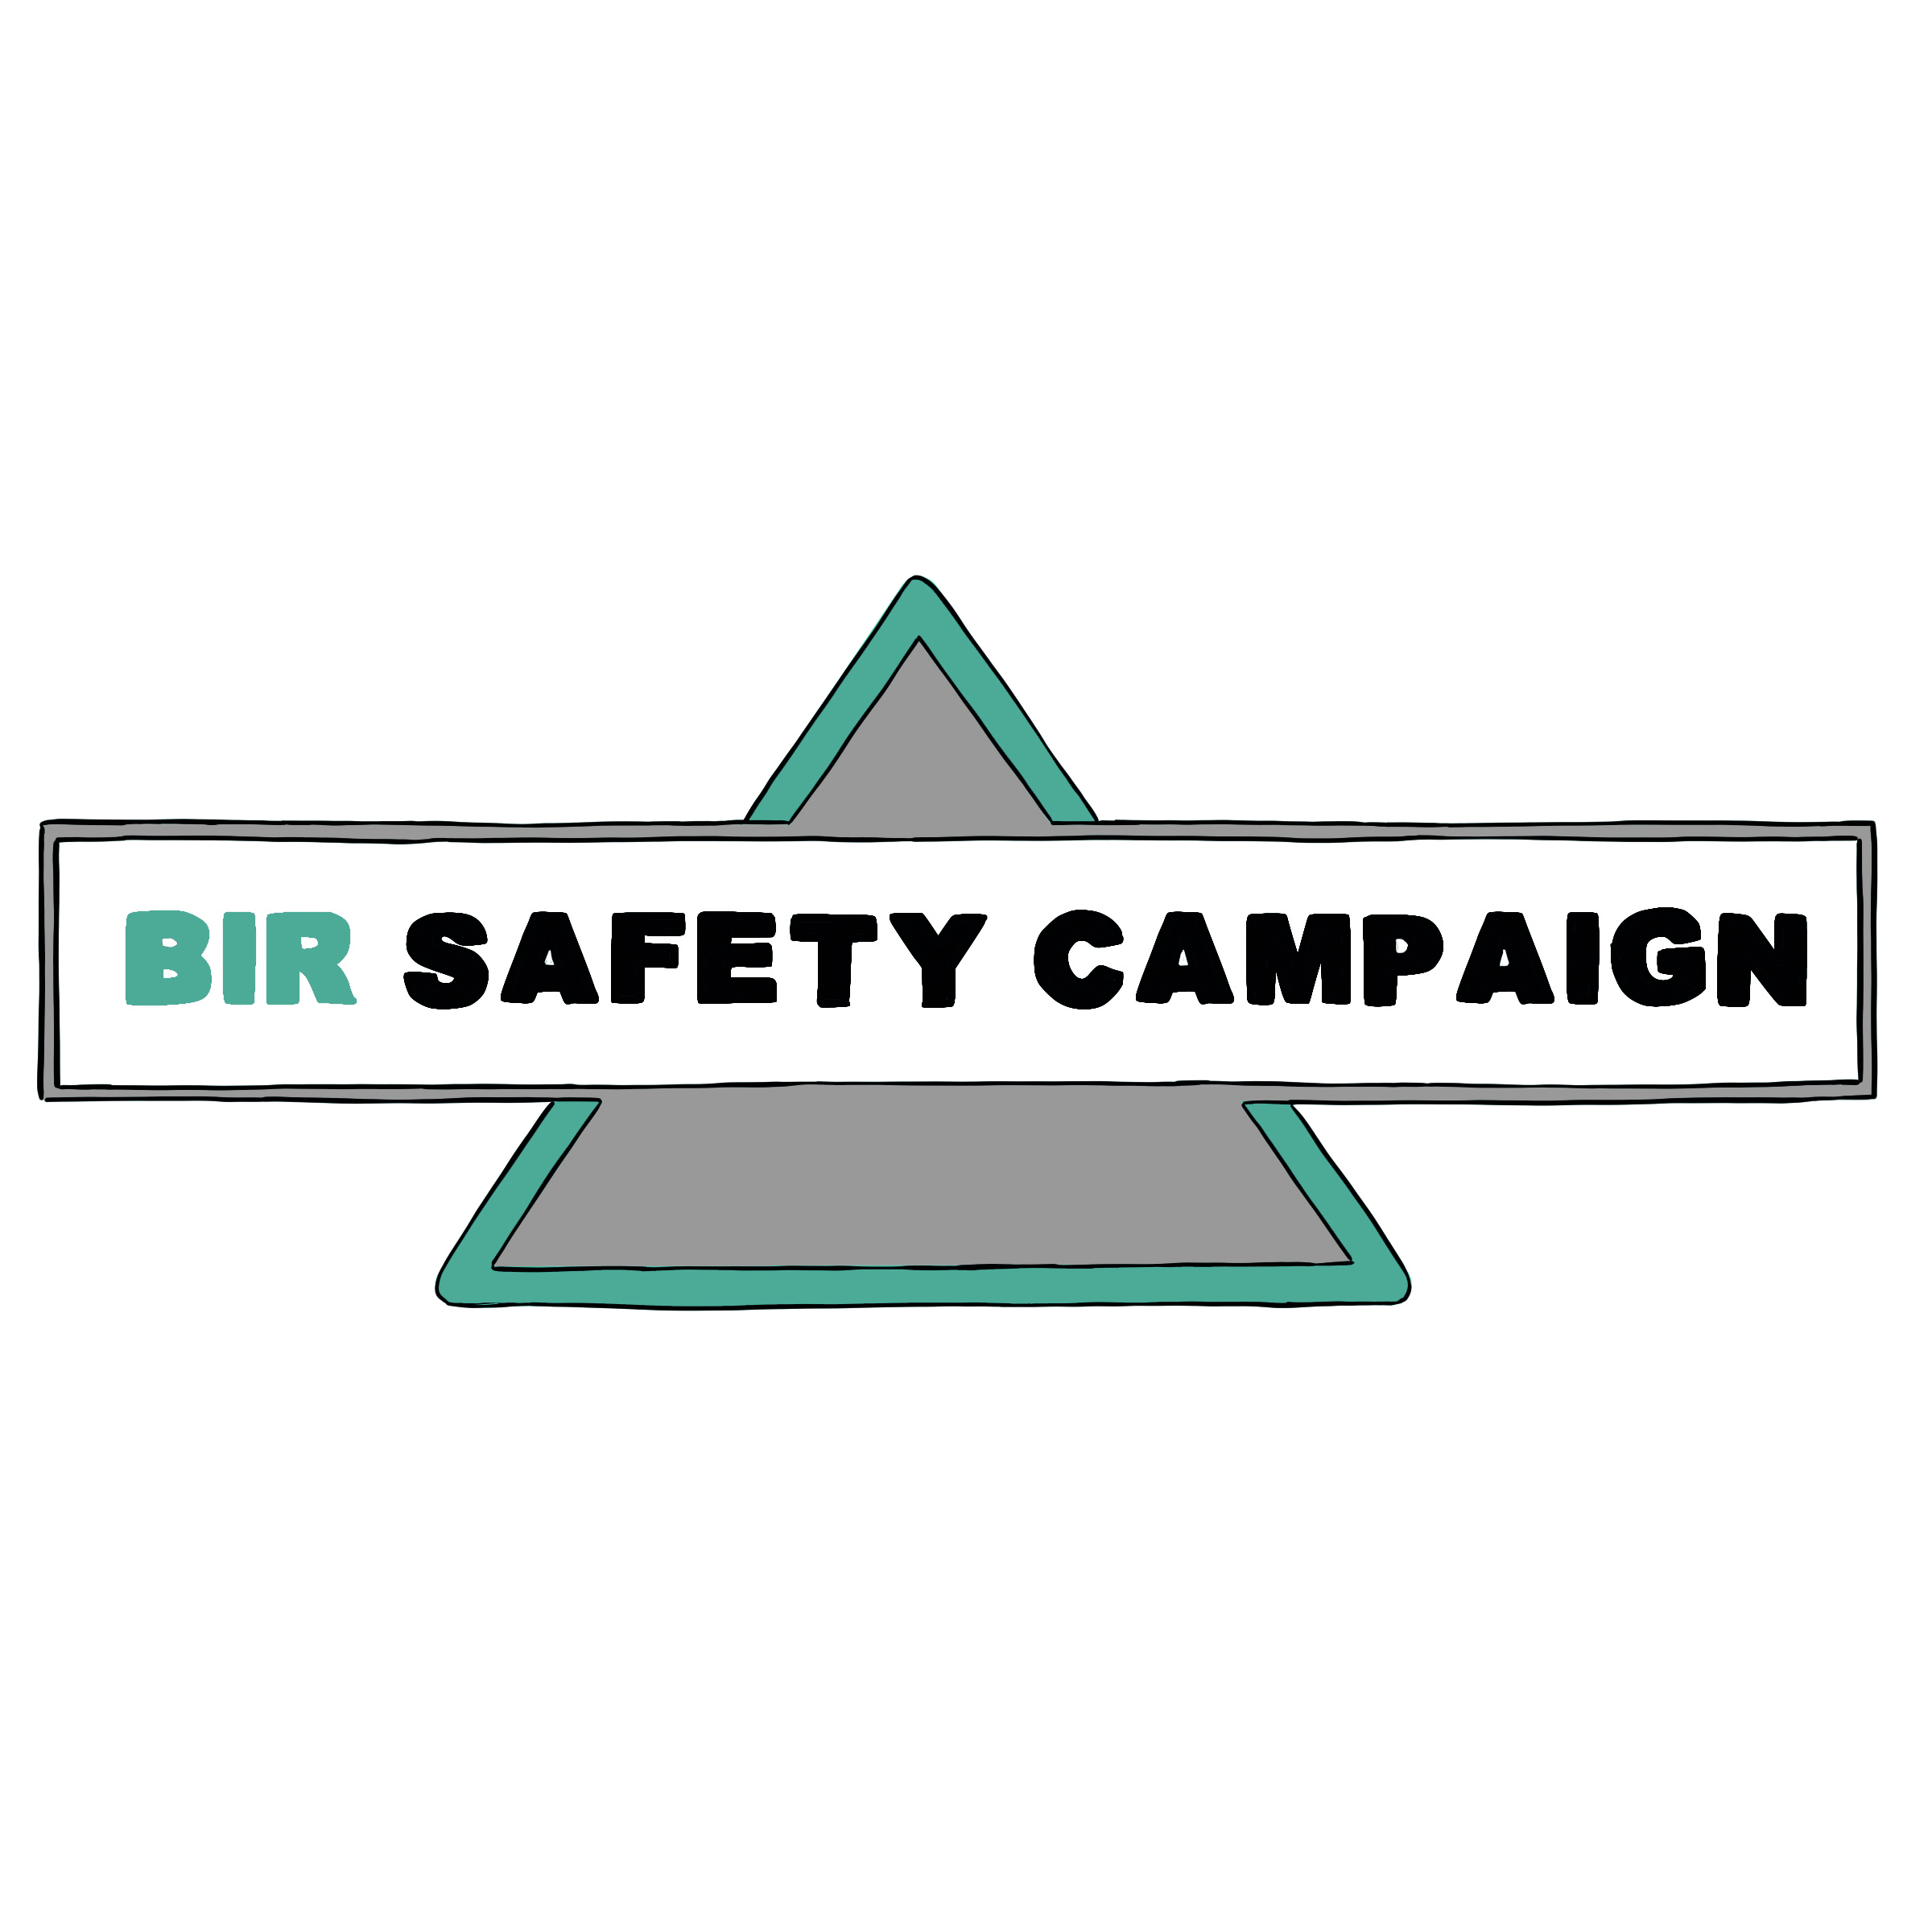 Safety campaign logo